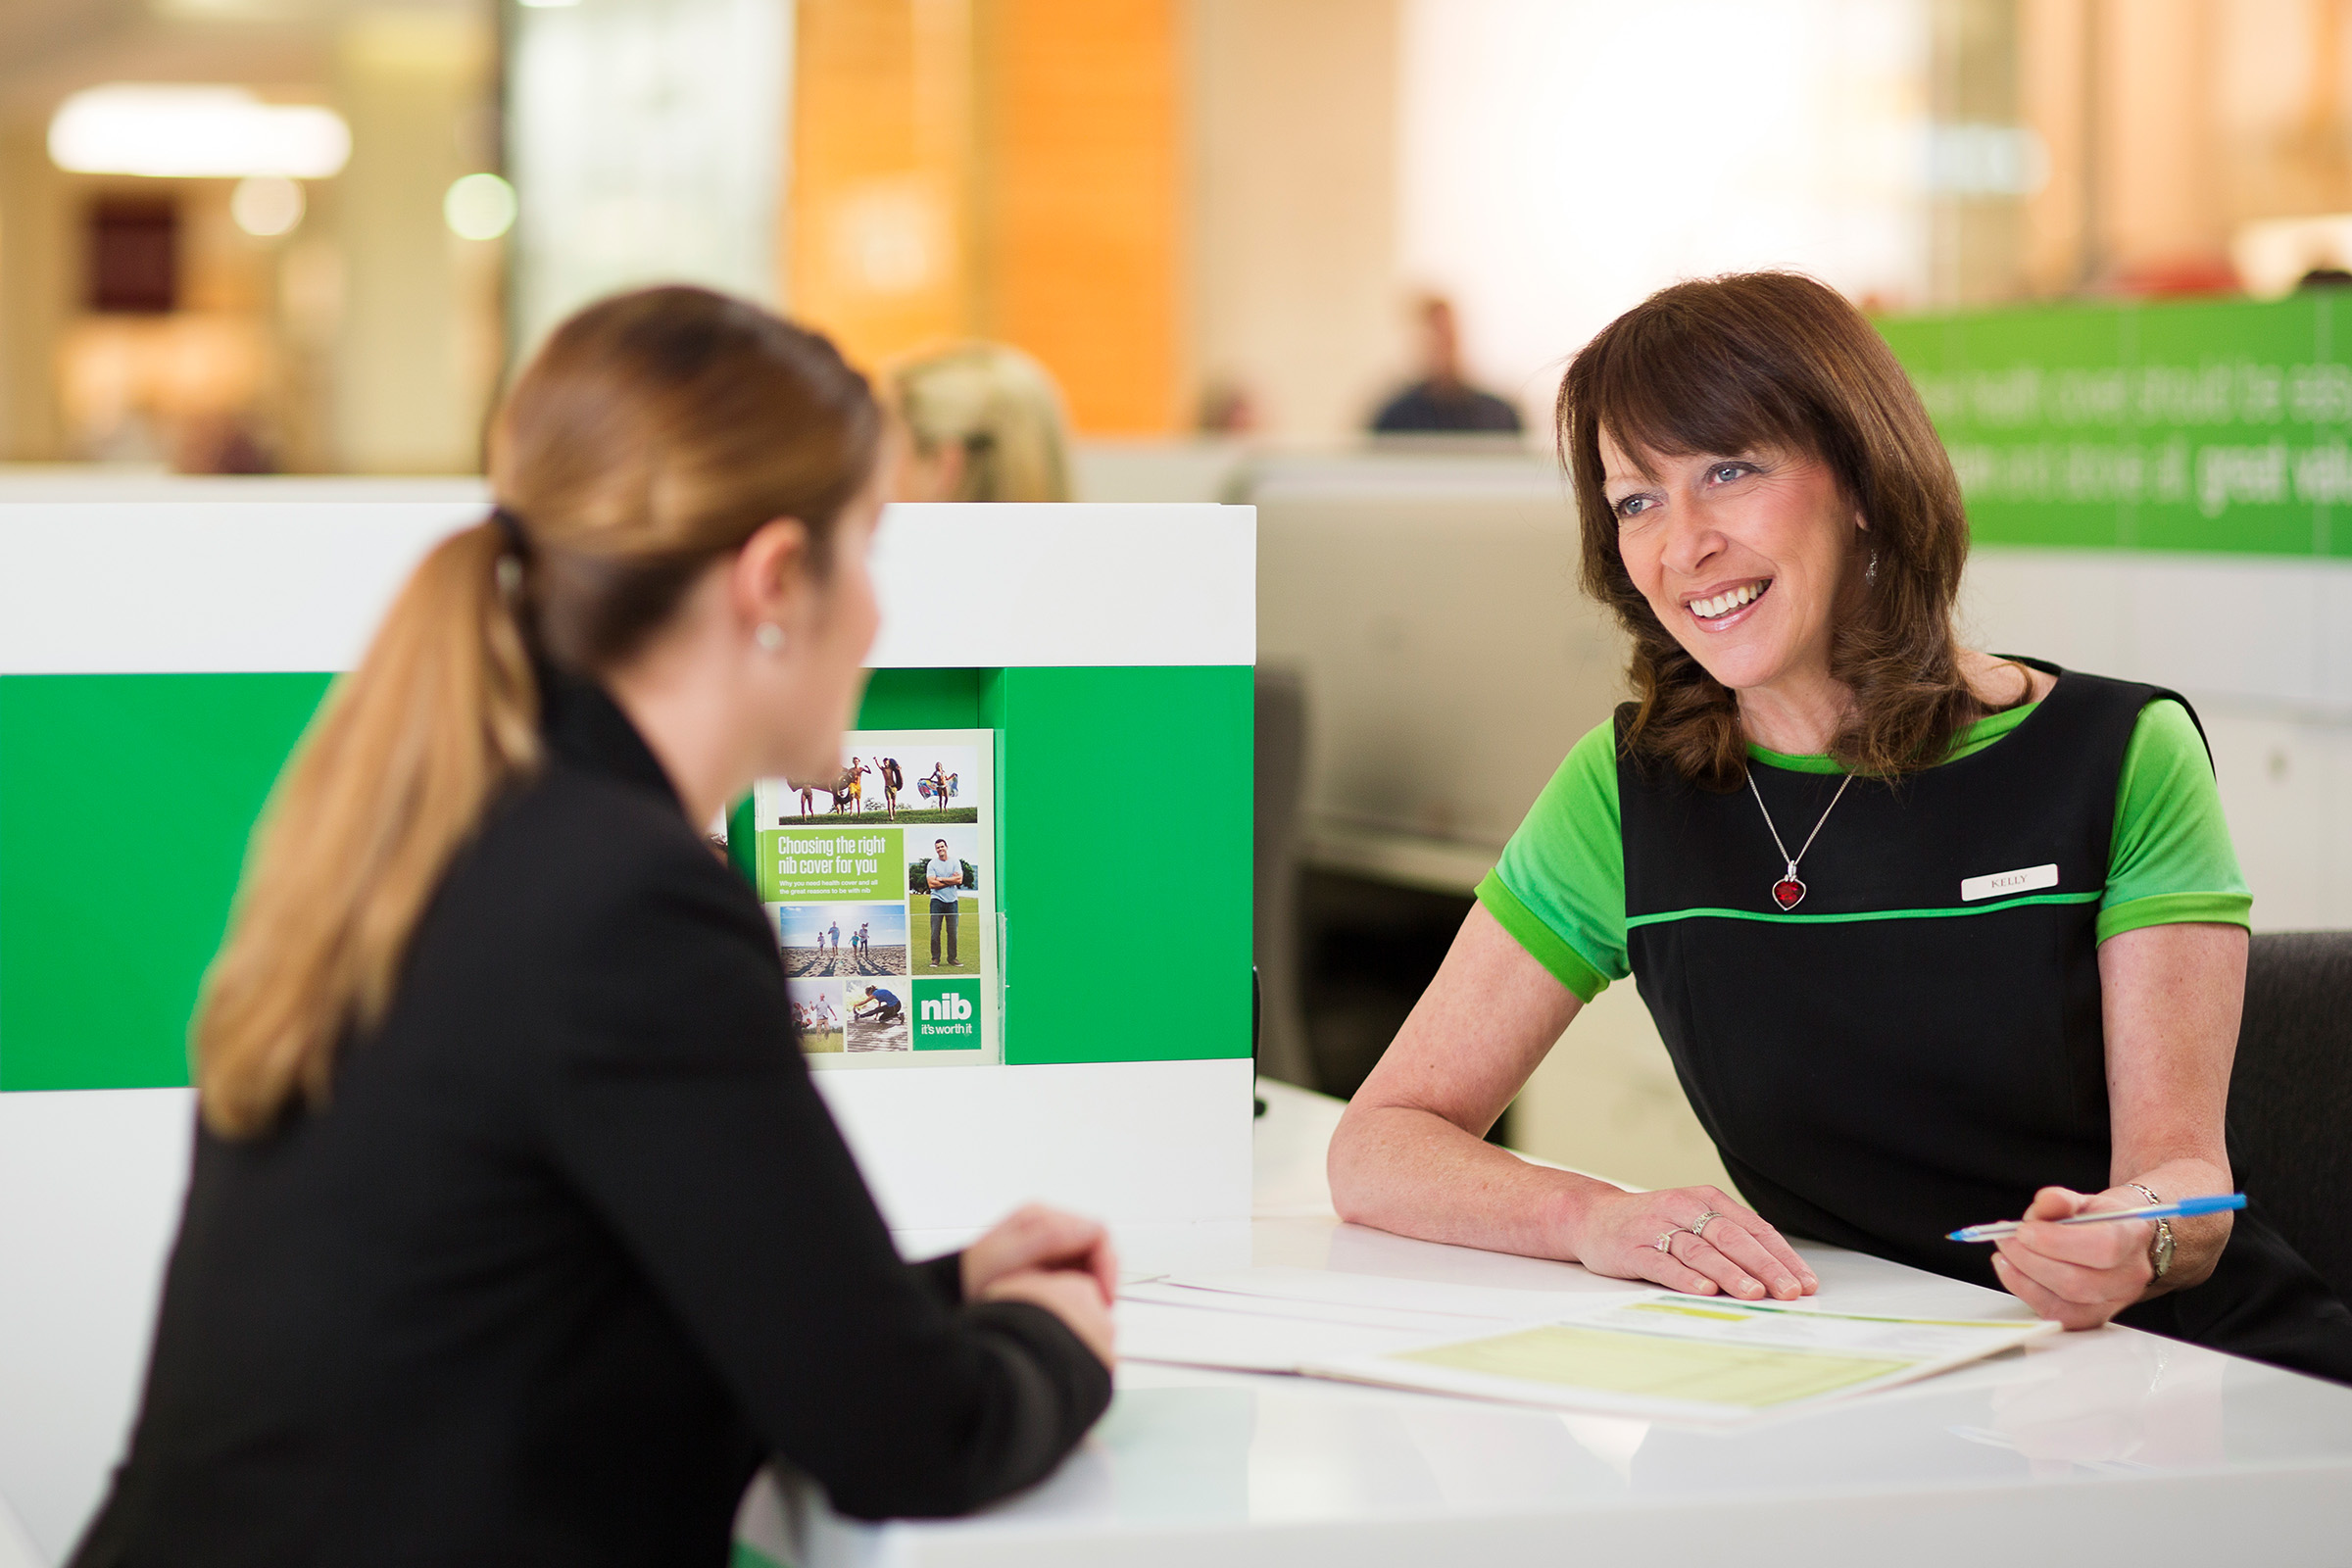 Advertising editorial location photography of friendly NIB employee talking to customer